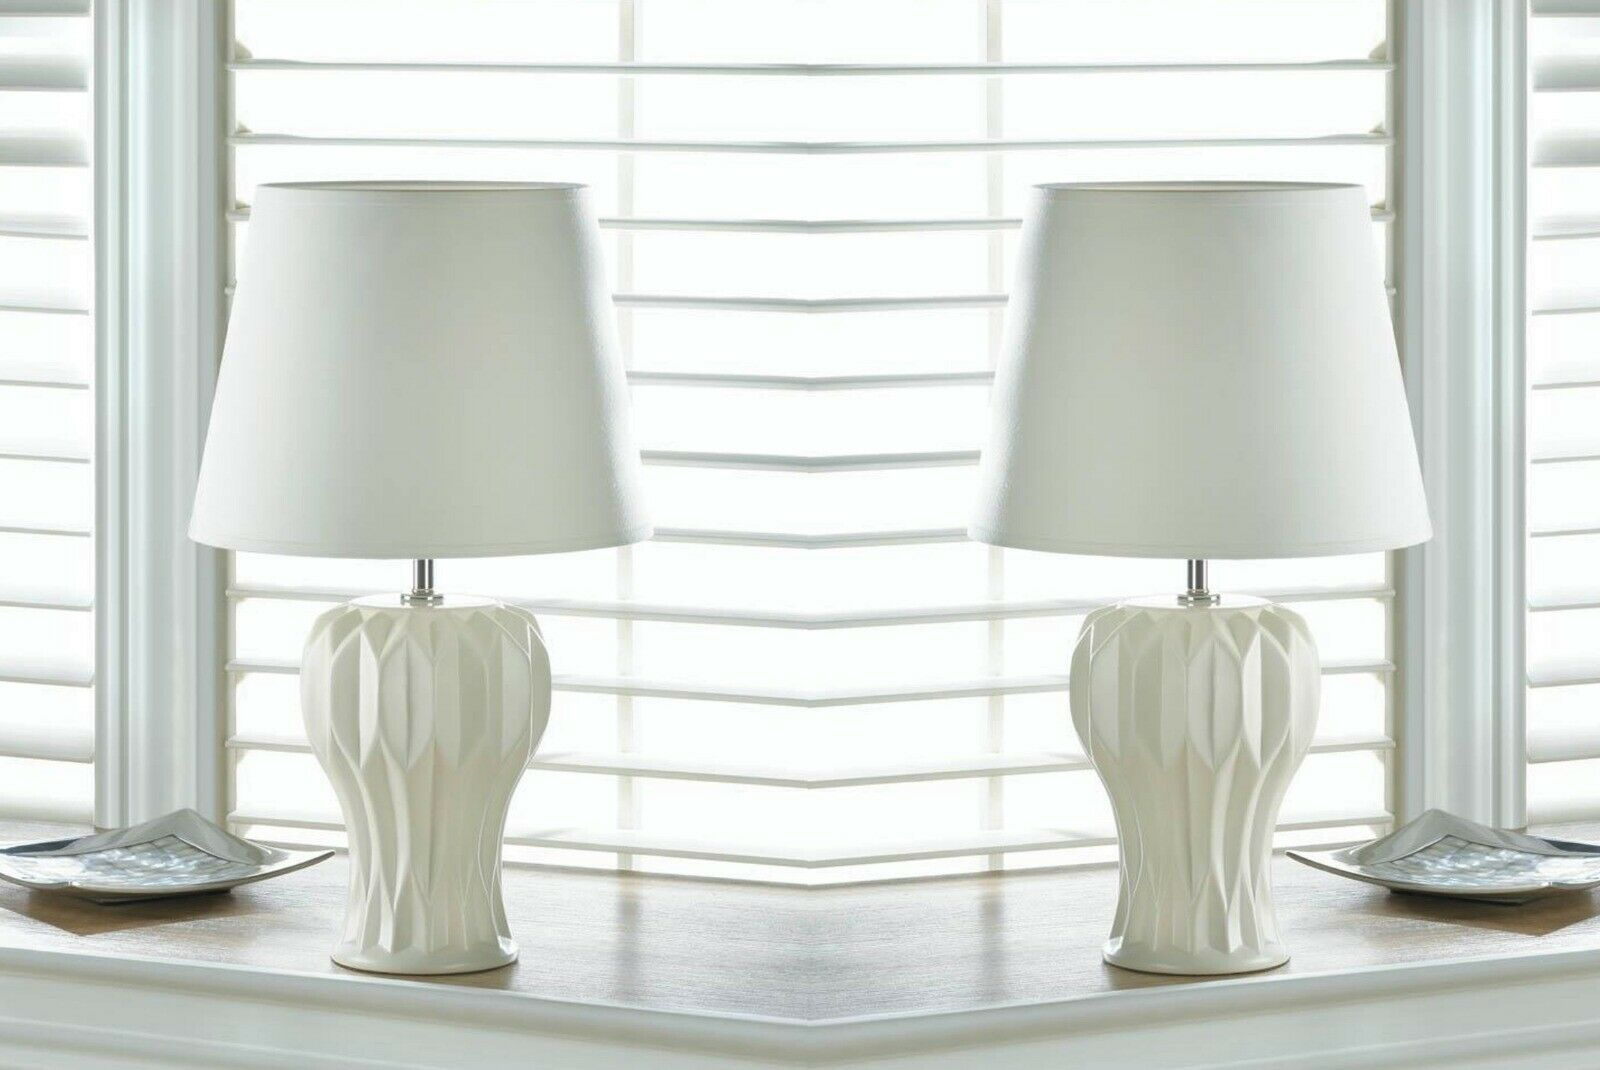 2 White Table Lamp Abstract Geometric Curved Ceramic Base W Fabric Shade 55 21 White Lamp Base White Lamp Shade Table Lamps For Sale White Ceramic Lamps